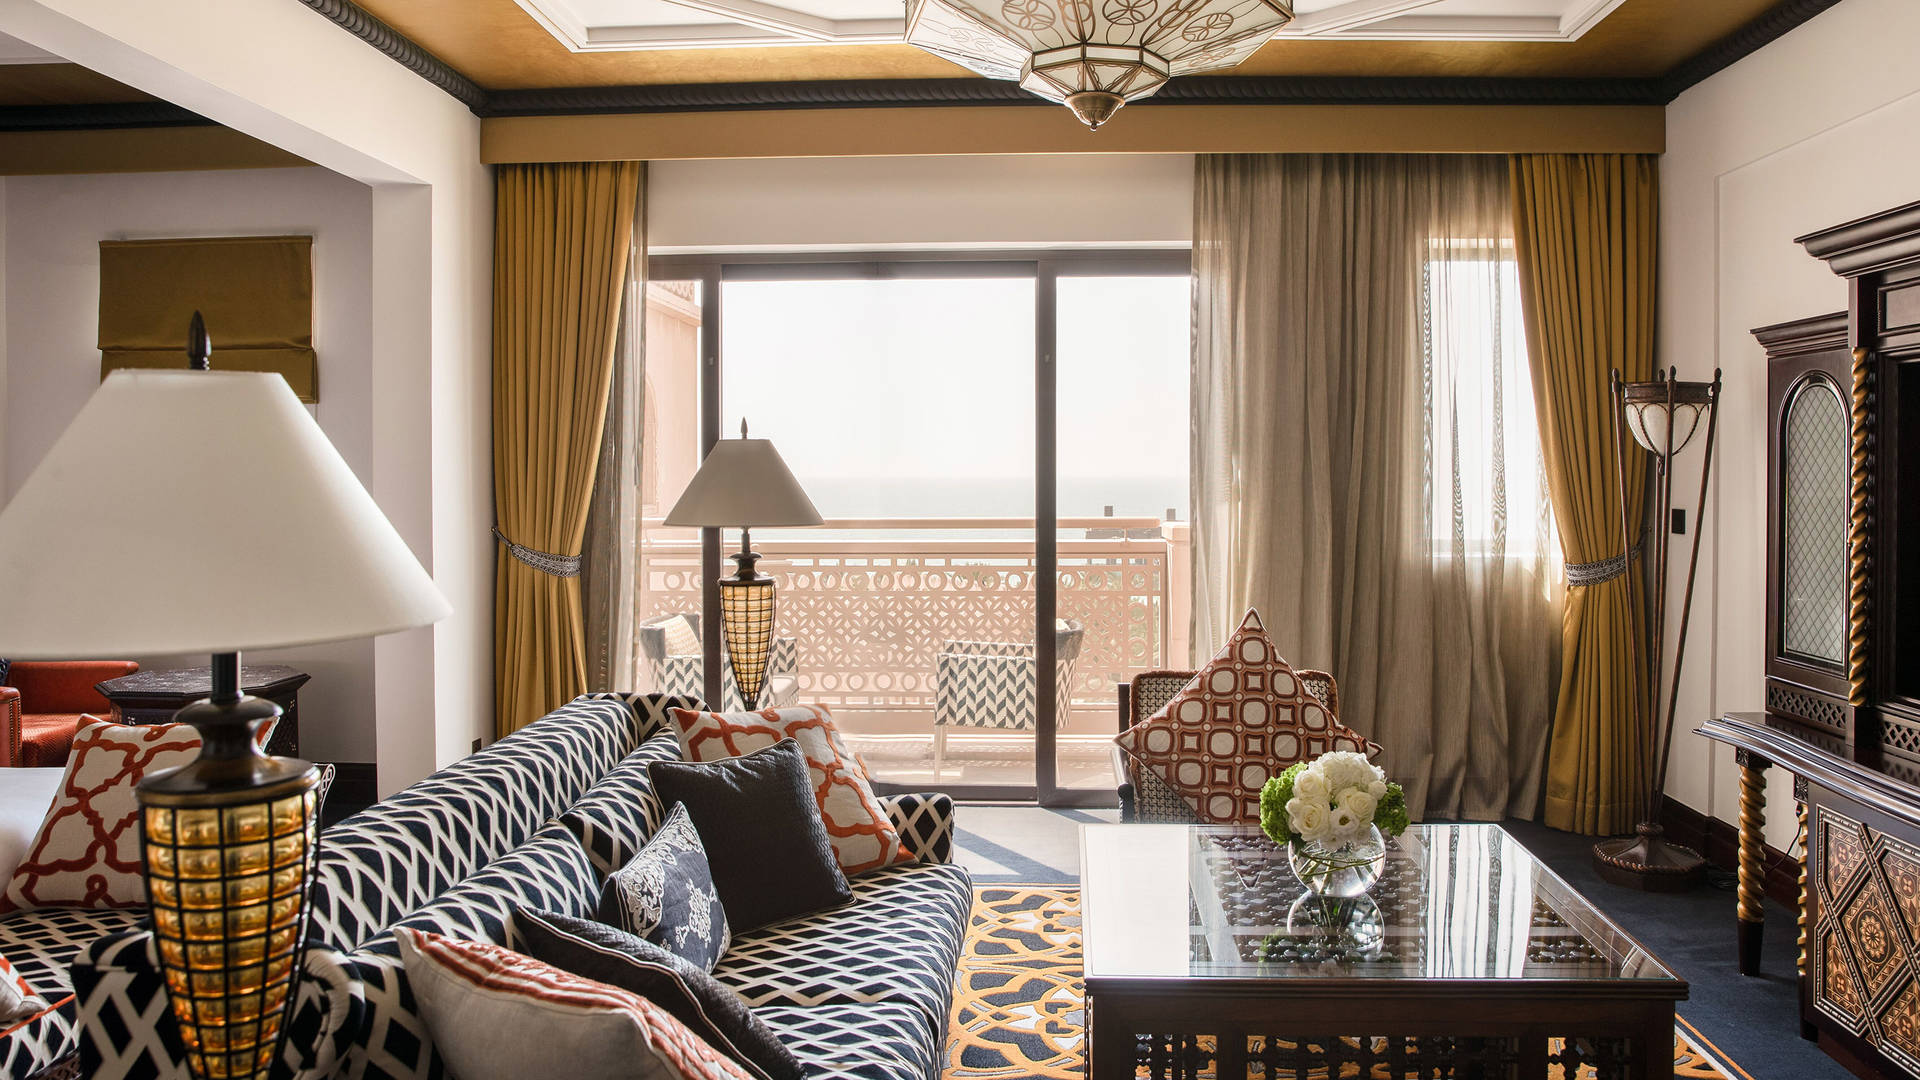 Jumeirah Al Qasr Junior Ocean Suite 16 9_landscape new